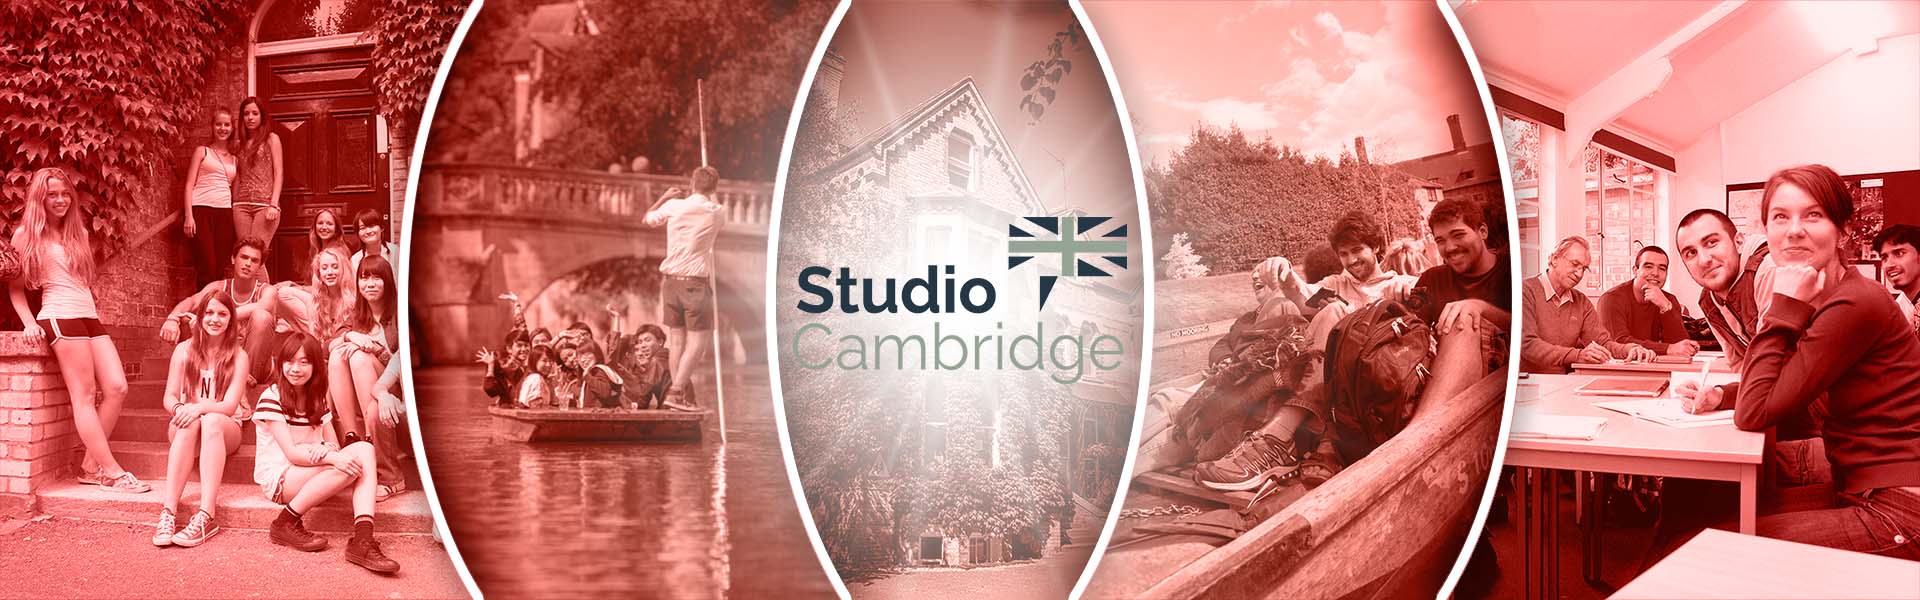 Studio Cambridge Dil Okulu